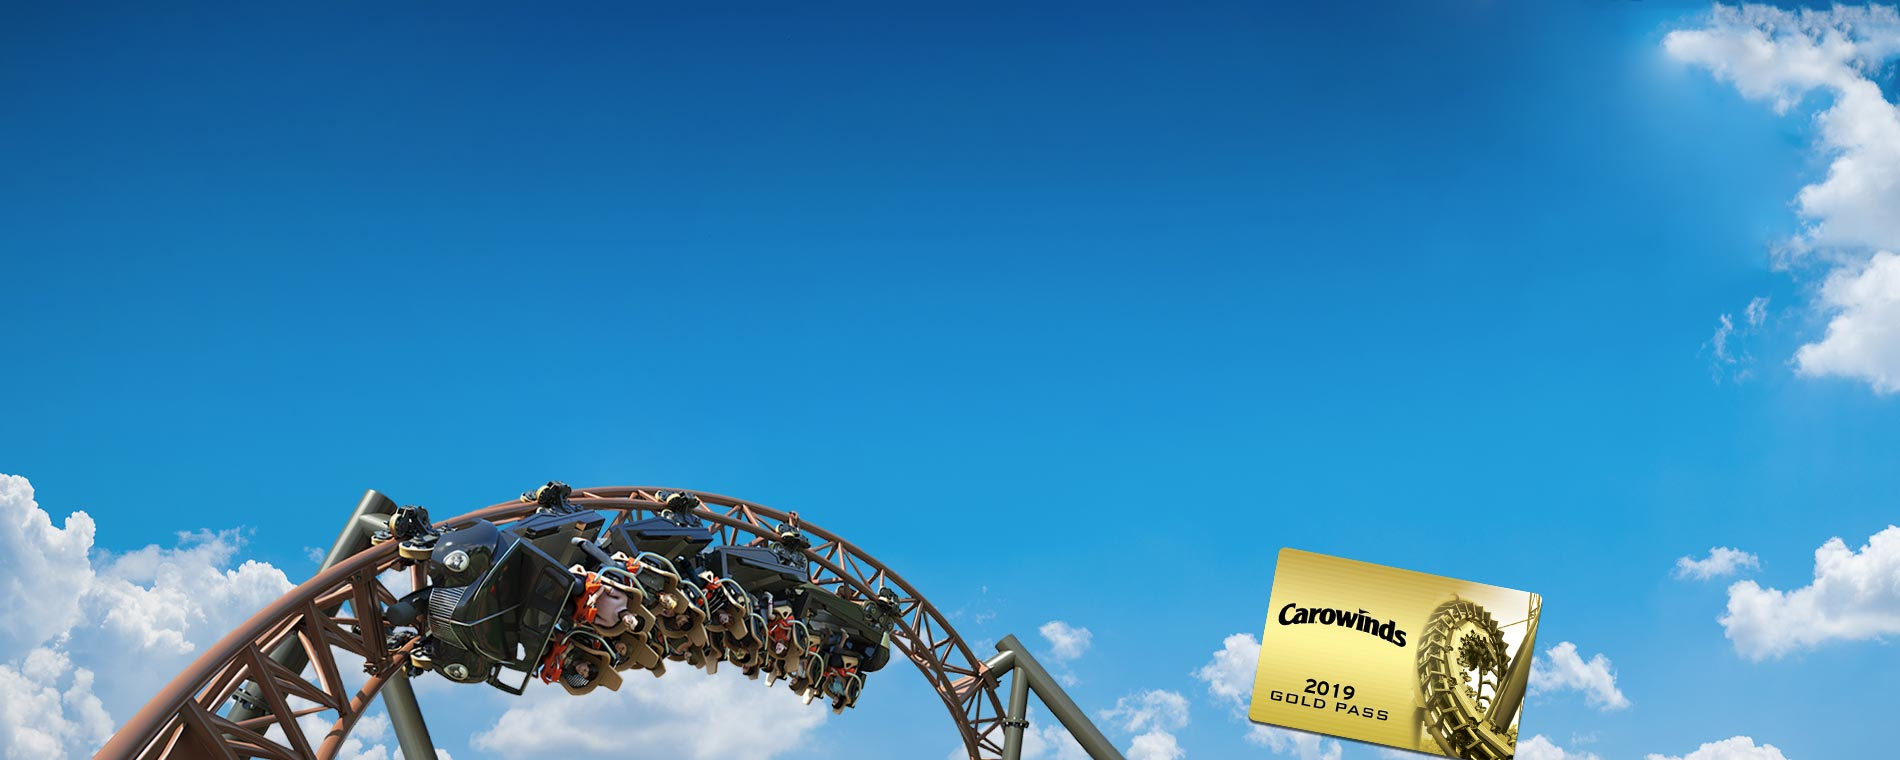 Carowinds Season Passes